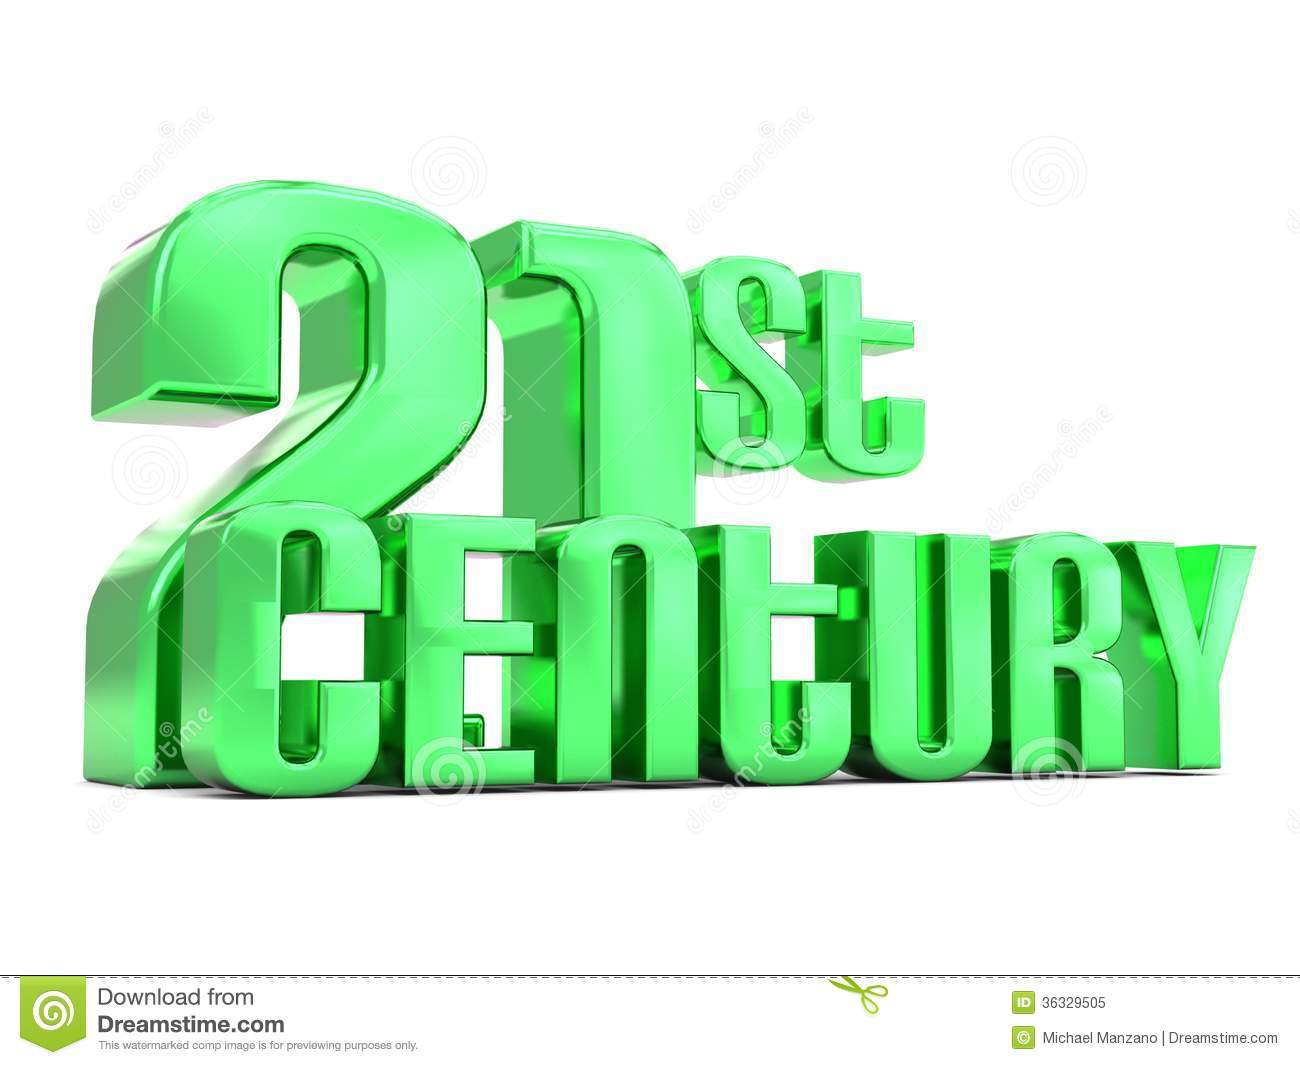 21st century art indroduction A key feature of the art scene in the 21st century (and of many sectors of 21st-century life) is the impact of globalization – the accelerating interconnectivity of human activity and information across time and space aided by the internet and mass media, awareness of the vitality of contemporary.